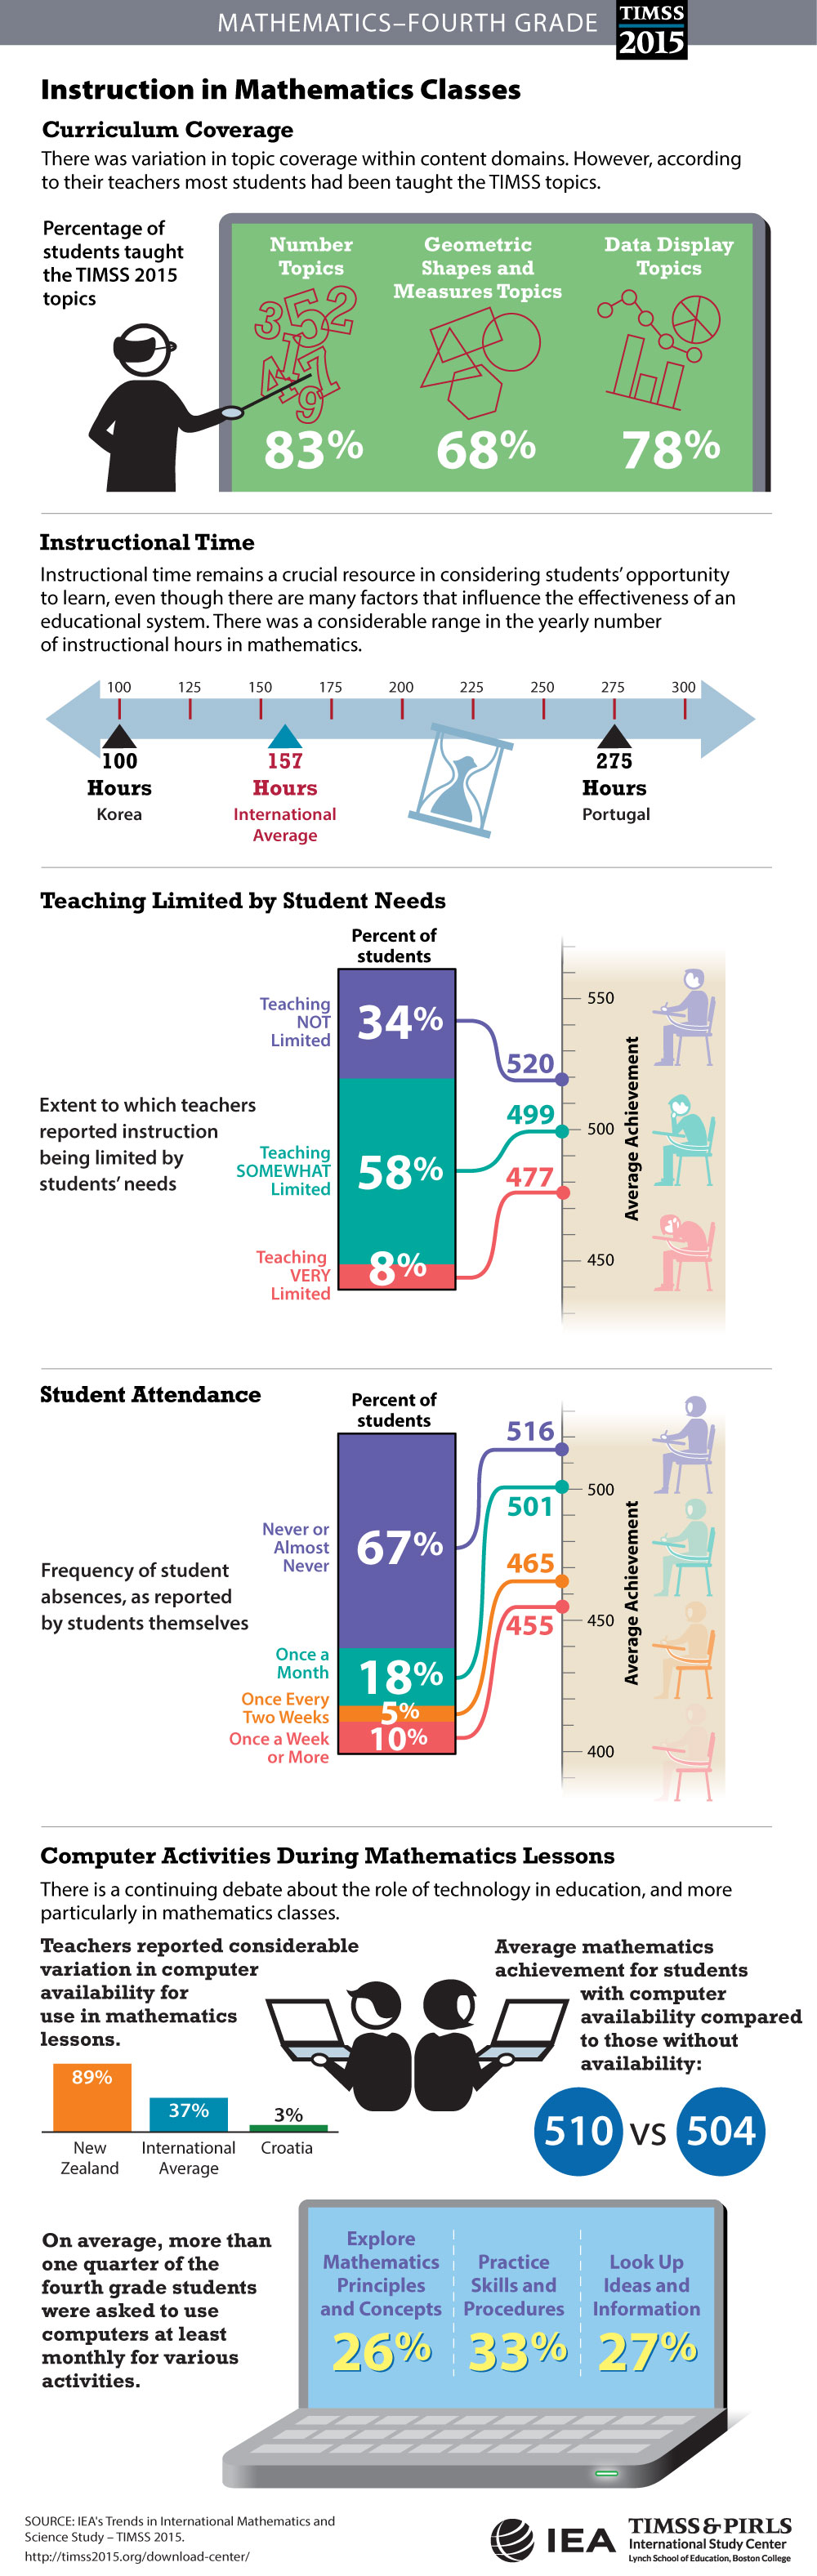 Classroom Instruction Infographic